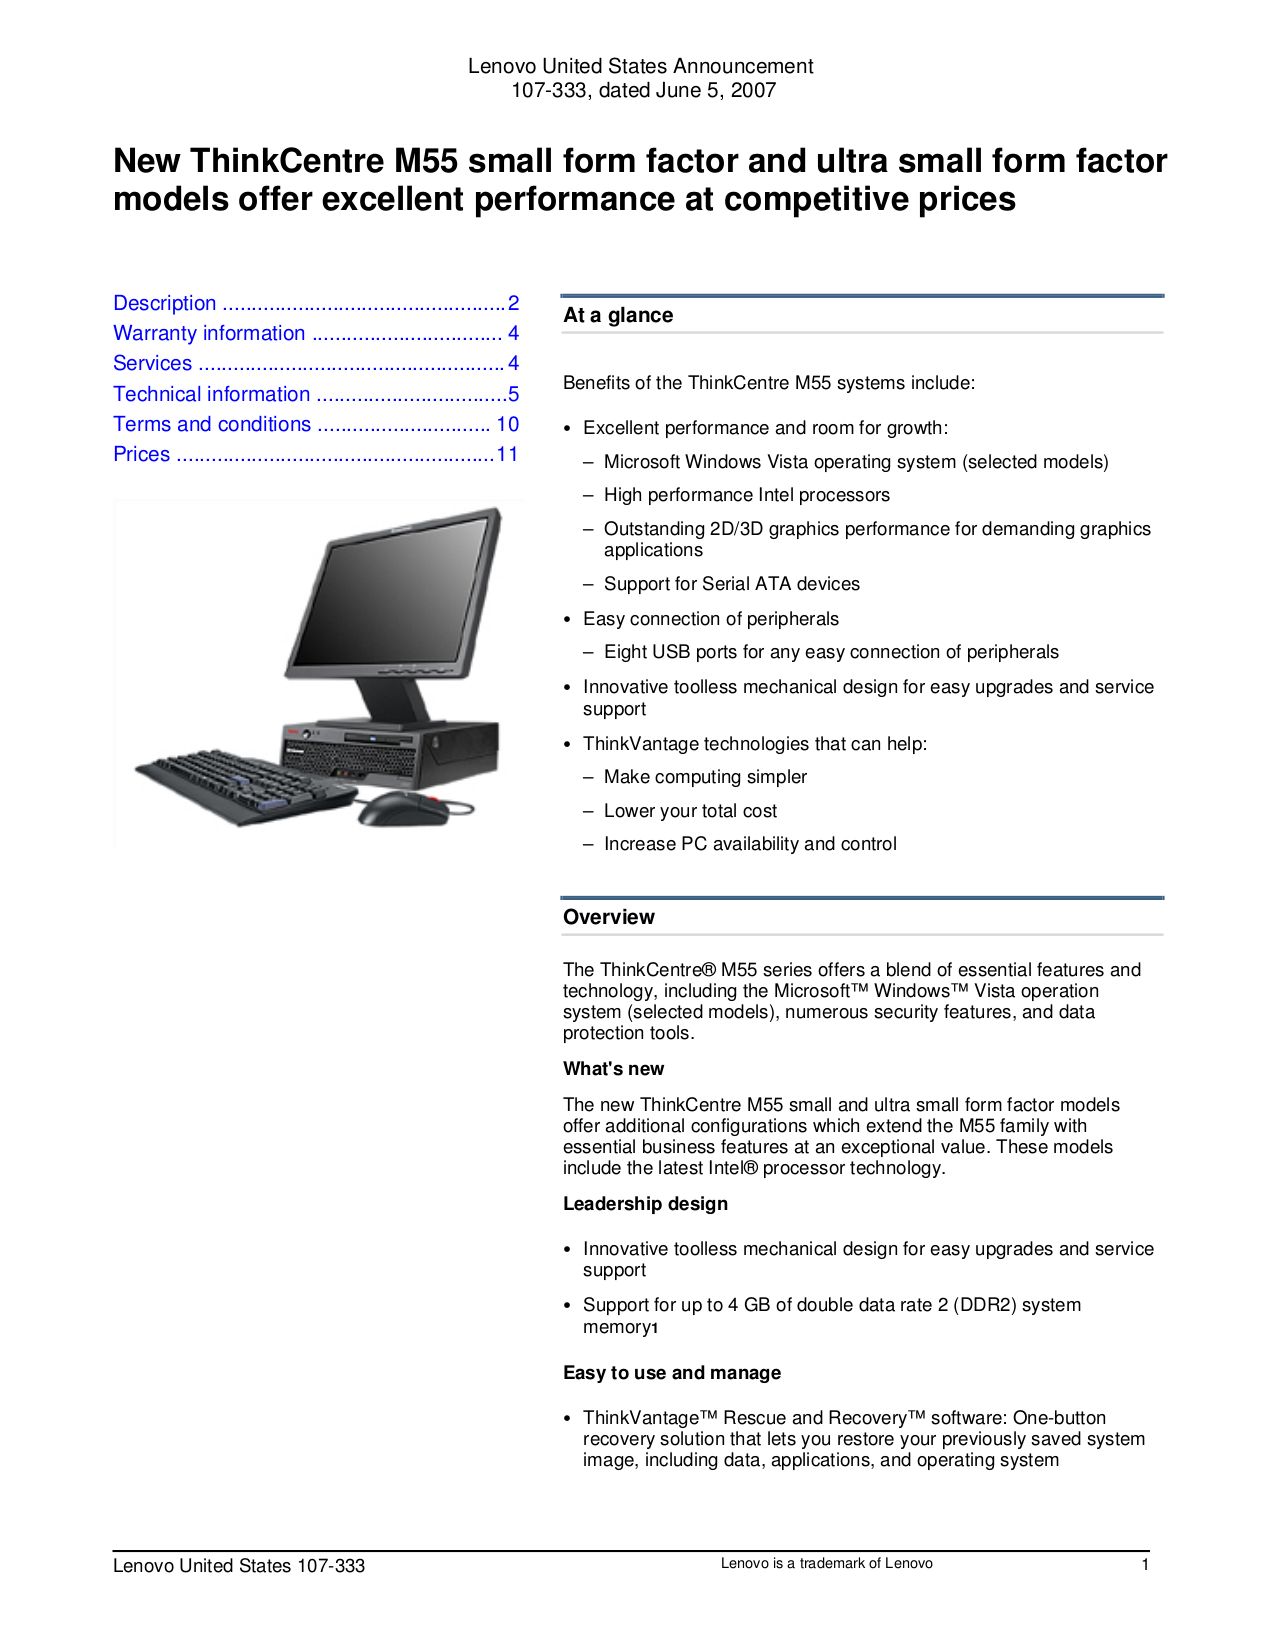 pdf for Lenovo Desktop ThinkCentre M55 8807 manual